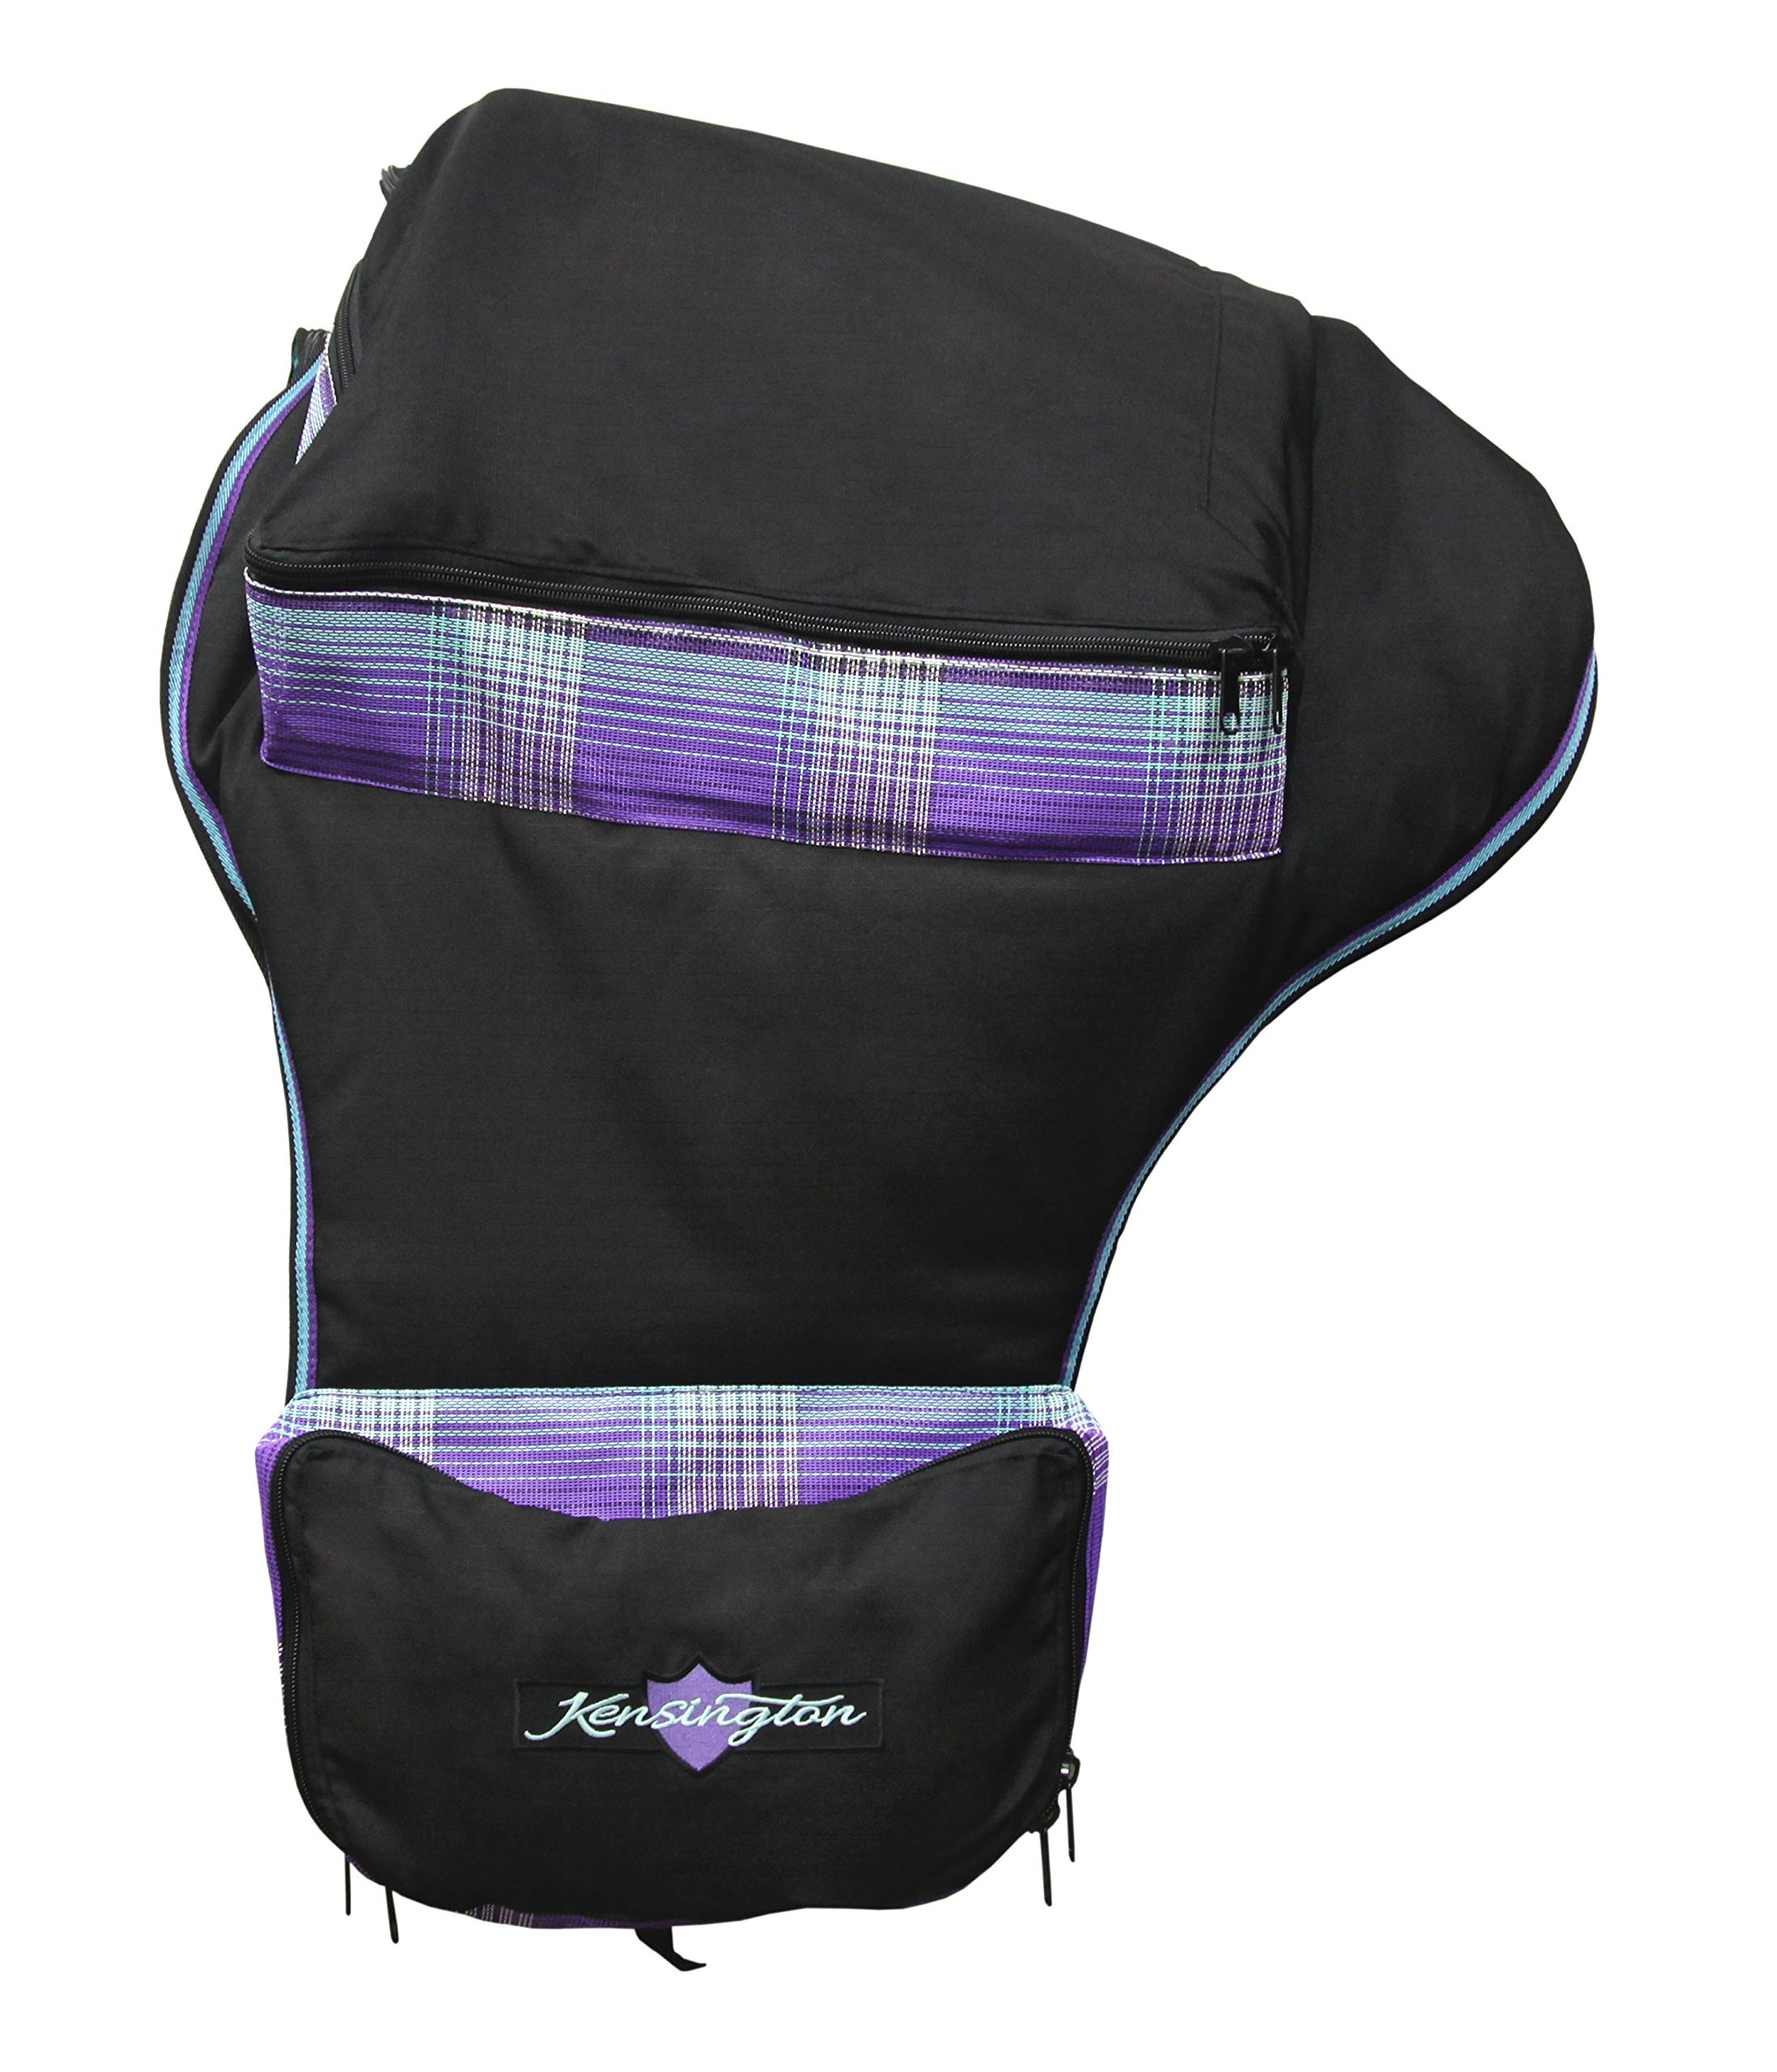 Kensington Signature Western Saddle Carry Bag - Protection for Biggest of Saddles, Extra Side Pockets, A Large Pocket on Top for Storage, Mesh Allows Airflow, Prevents Mold Mildew, Lavender Mint Plaid by Kensington Protective Products